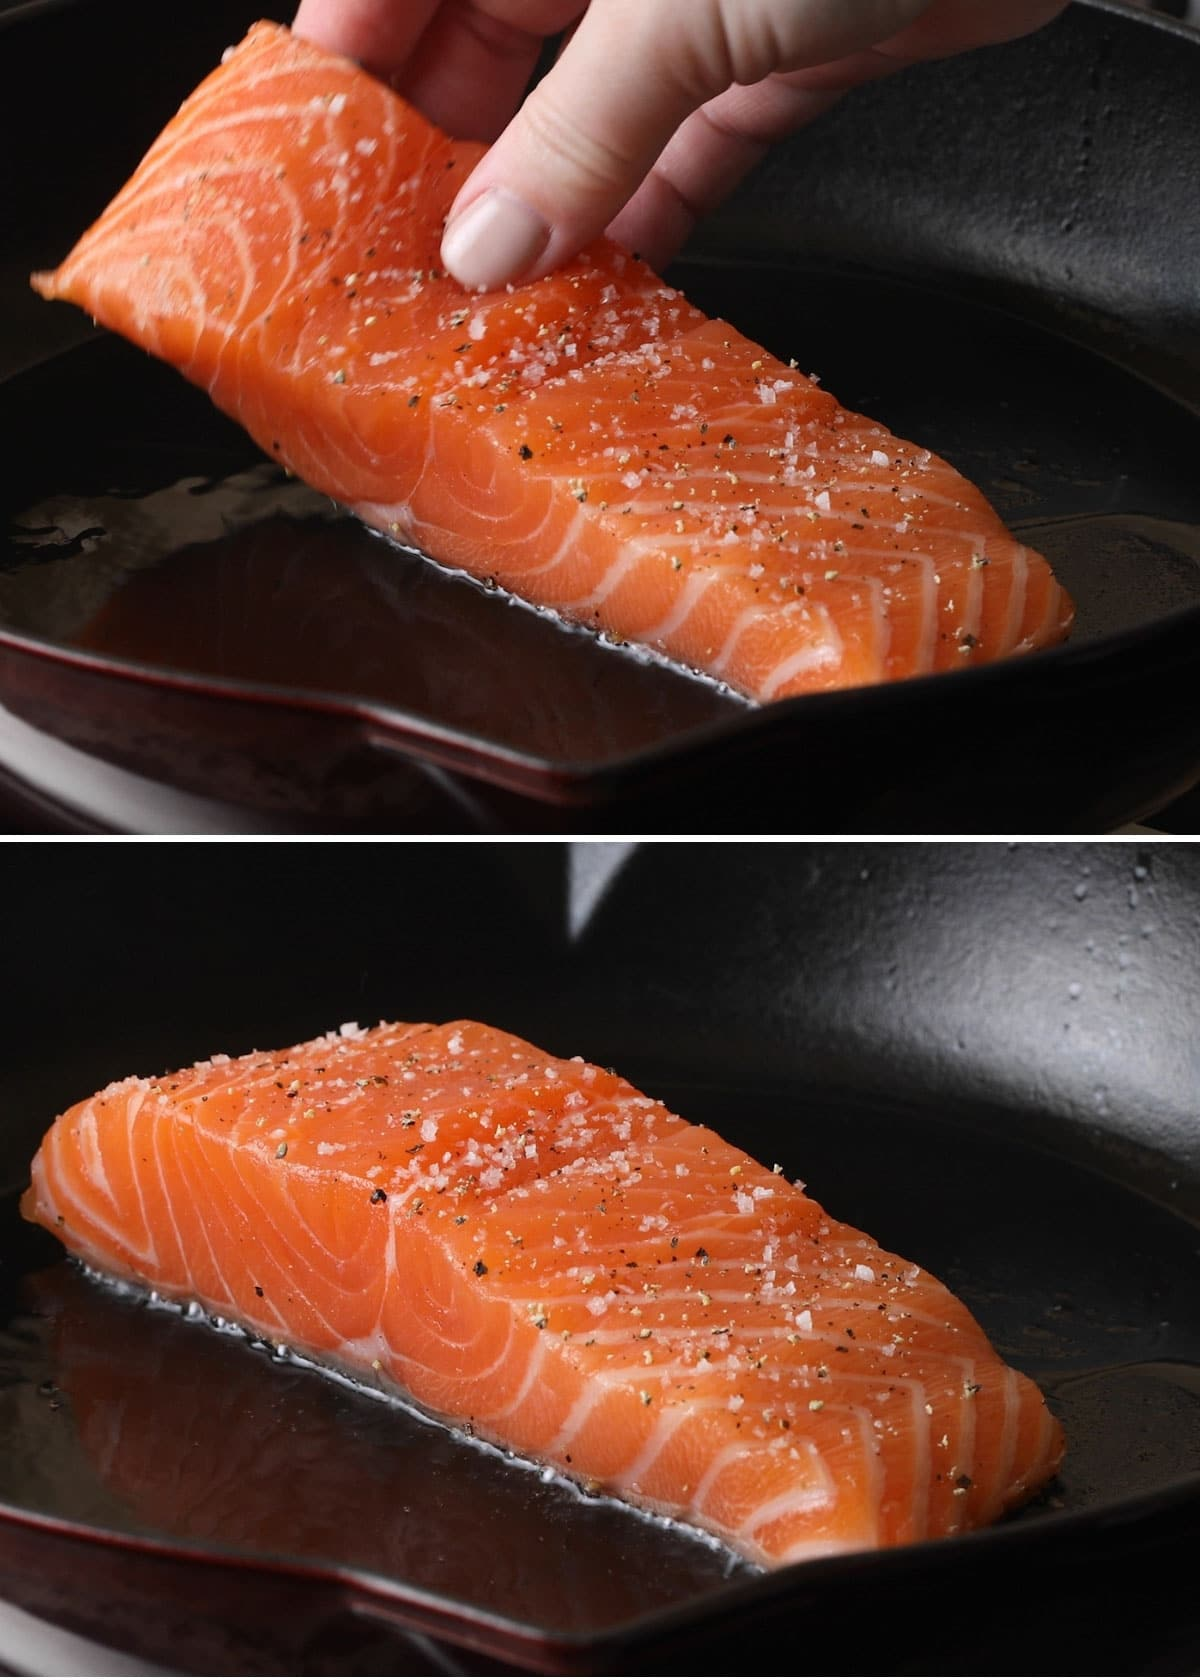 two photos showing the process of pan searing salmon: placing the fillet in the pan and the fillet starting to buckle